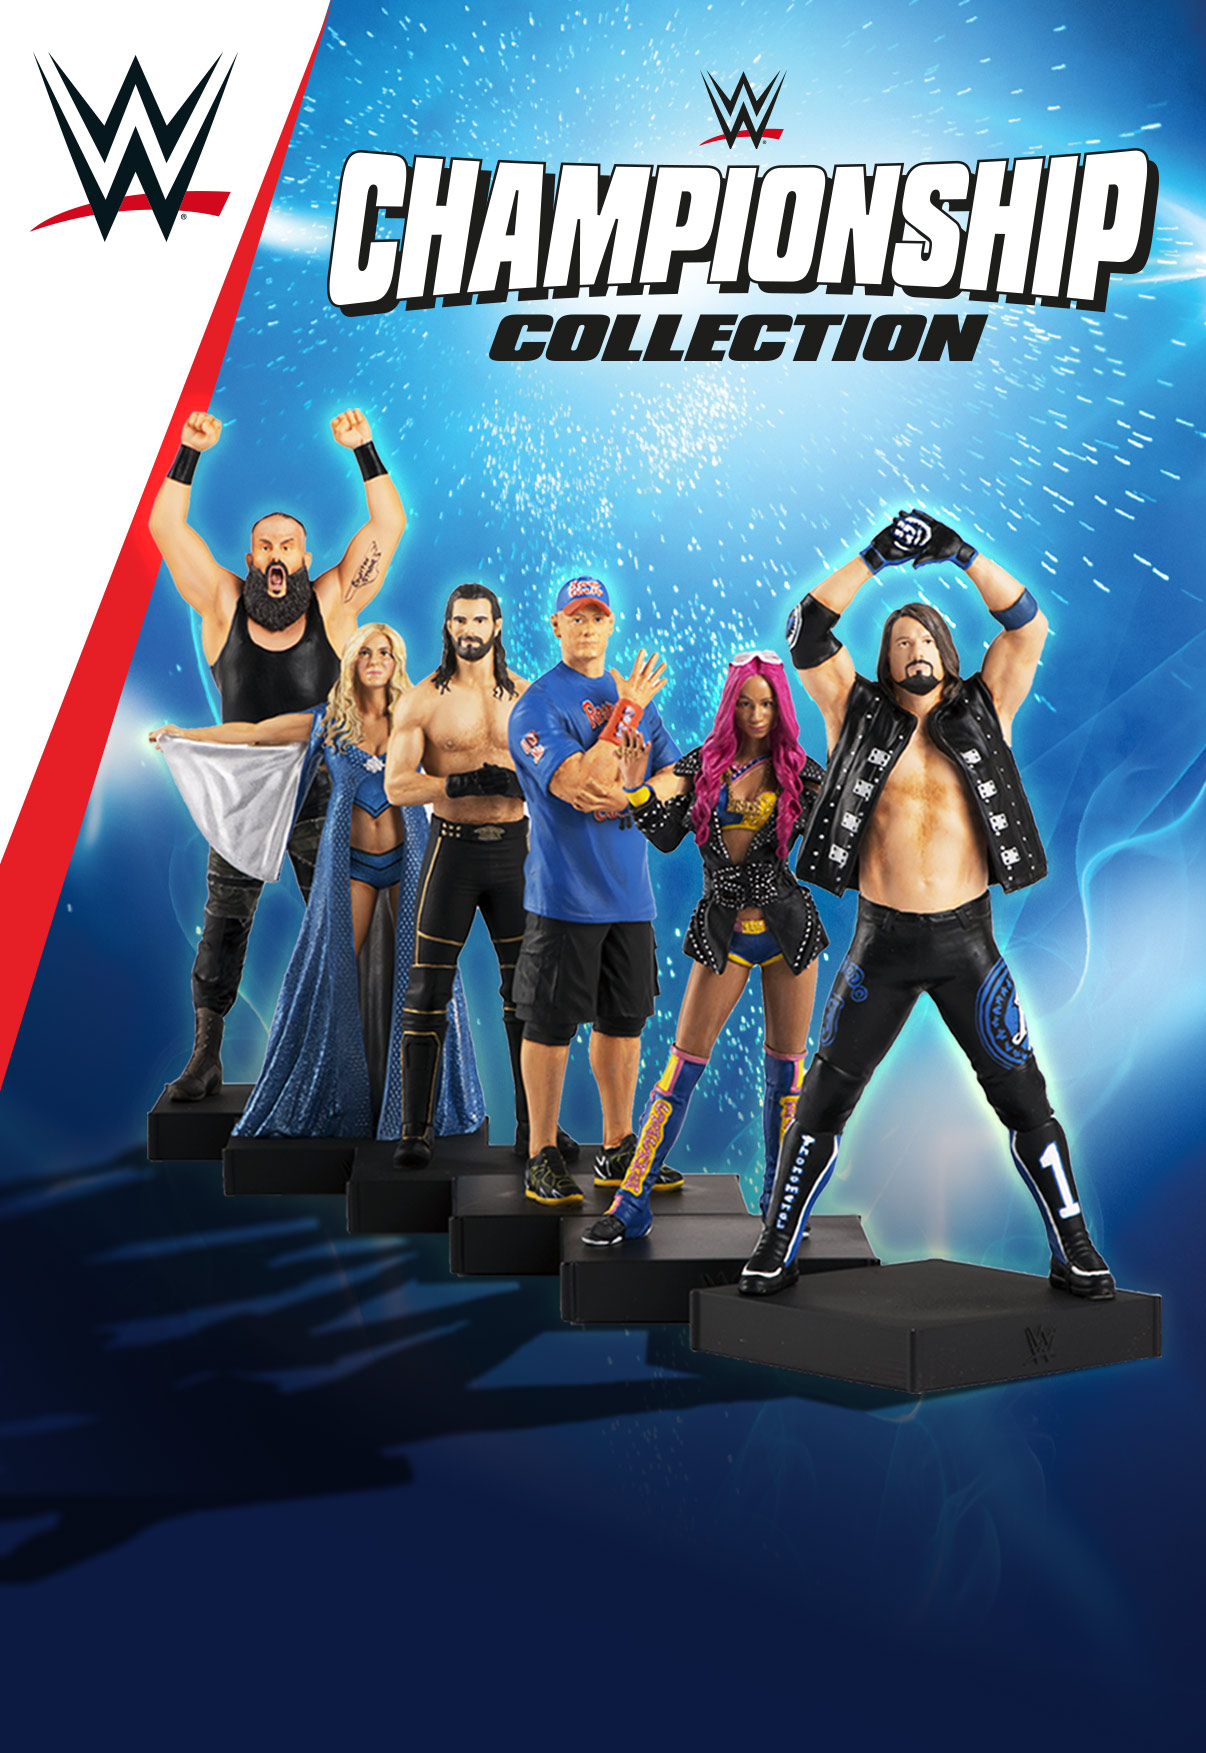 WWE Championship Collection